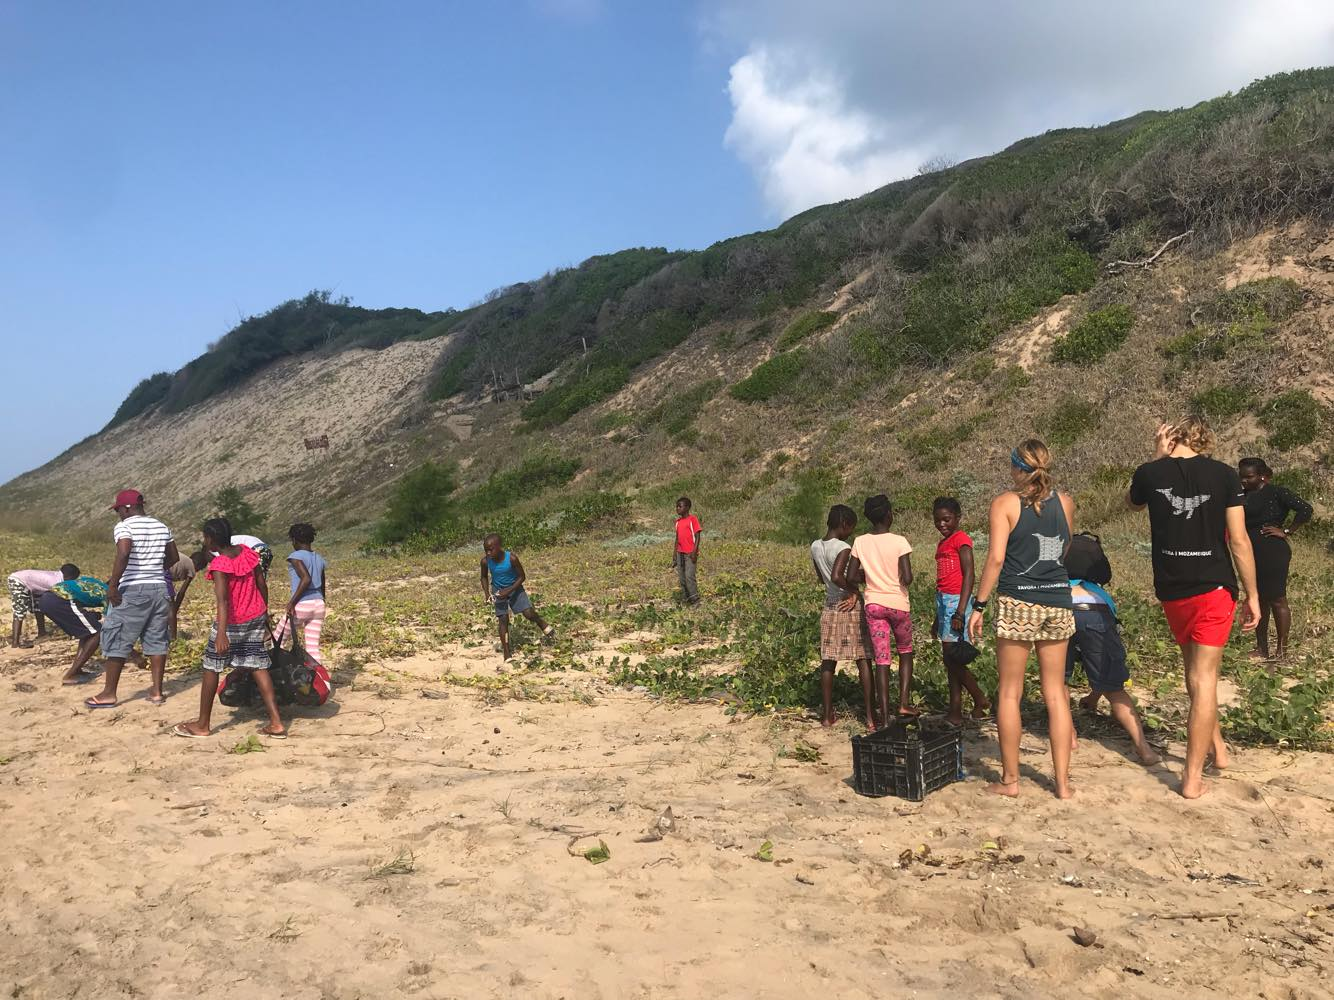 What an incredible image of people coming together to tackle trash in their local community. Here GOS Lead Ambassador Jennifer Thomson ran a beach cleanup in Zavora, Mozambique! She completed 2 beach cleans with 30 researchers and school children, collecting 122kg of ocean trash! AMAZING! (Photo: @   jenniferelizabeththomson   )